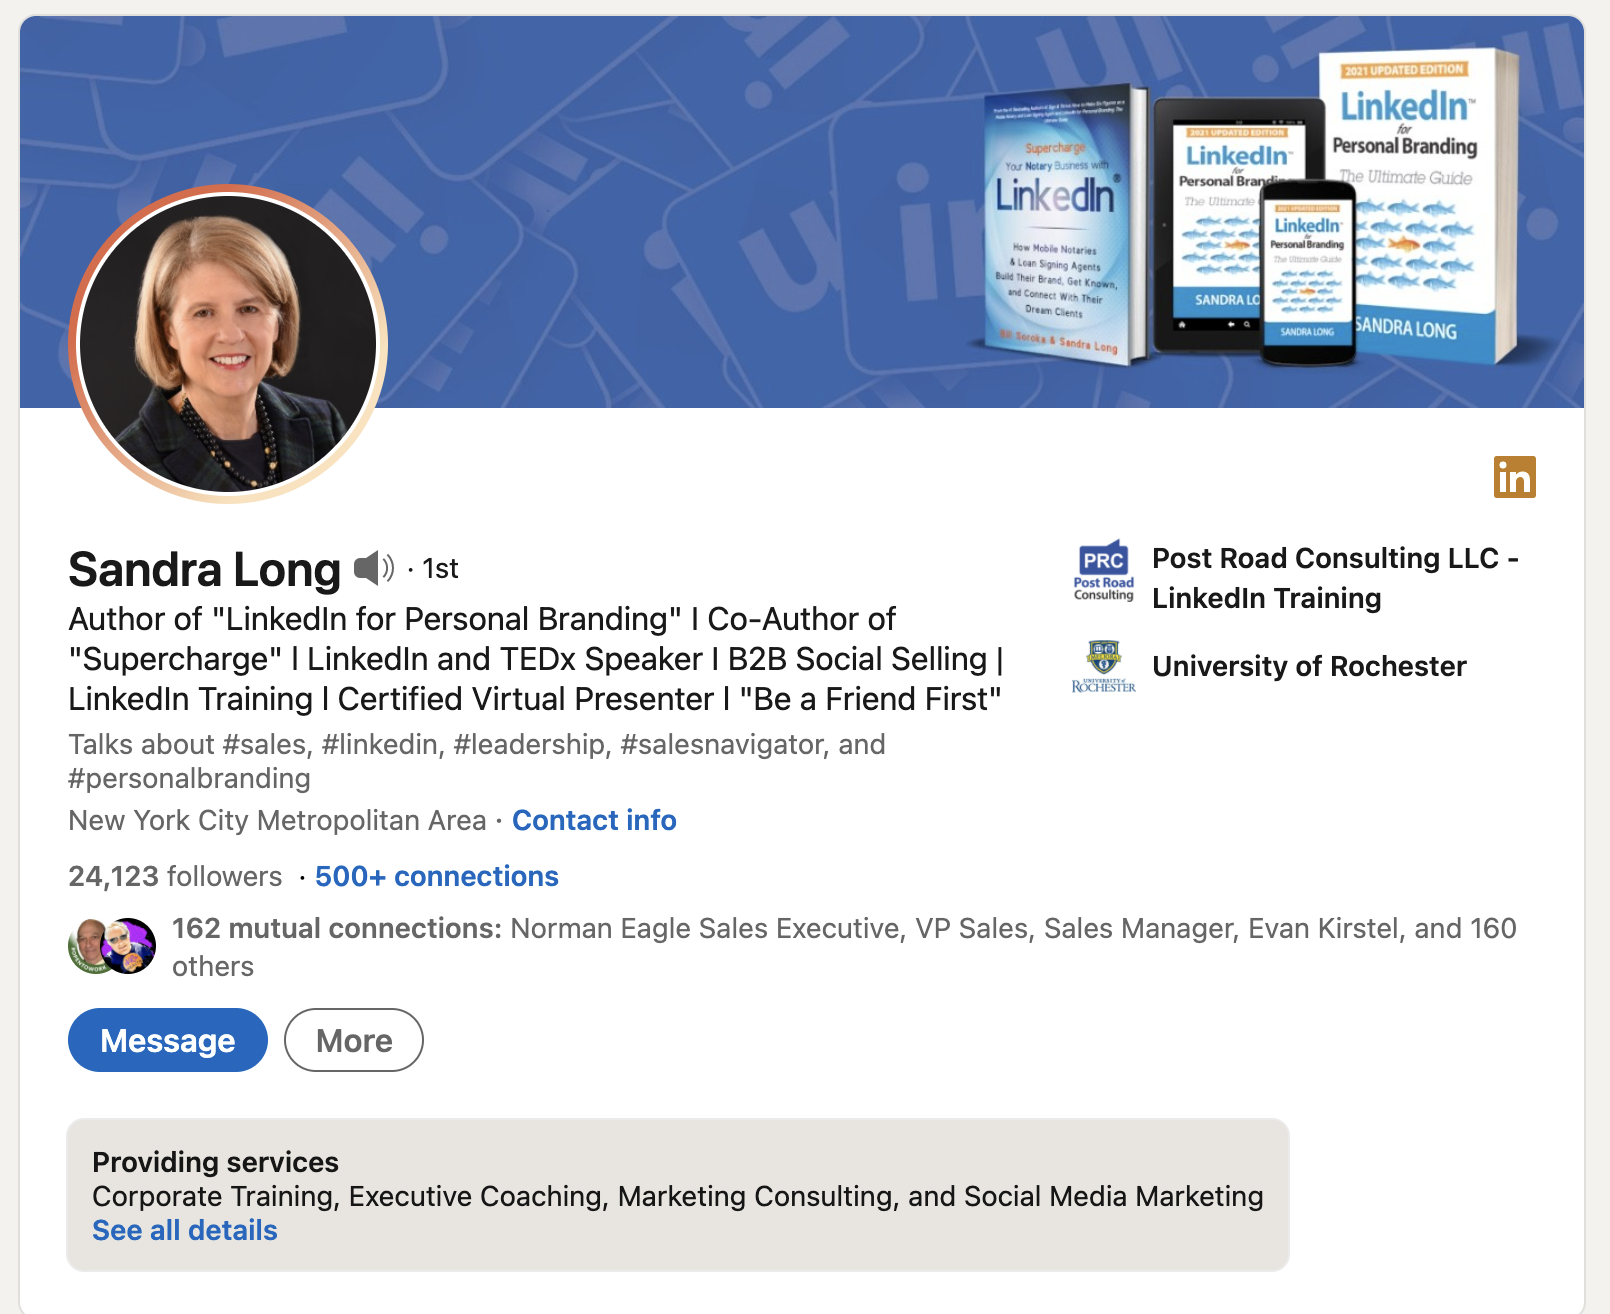 How to Craft an Outstanding LinkedIn Profile as an Older Professional